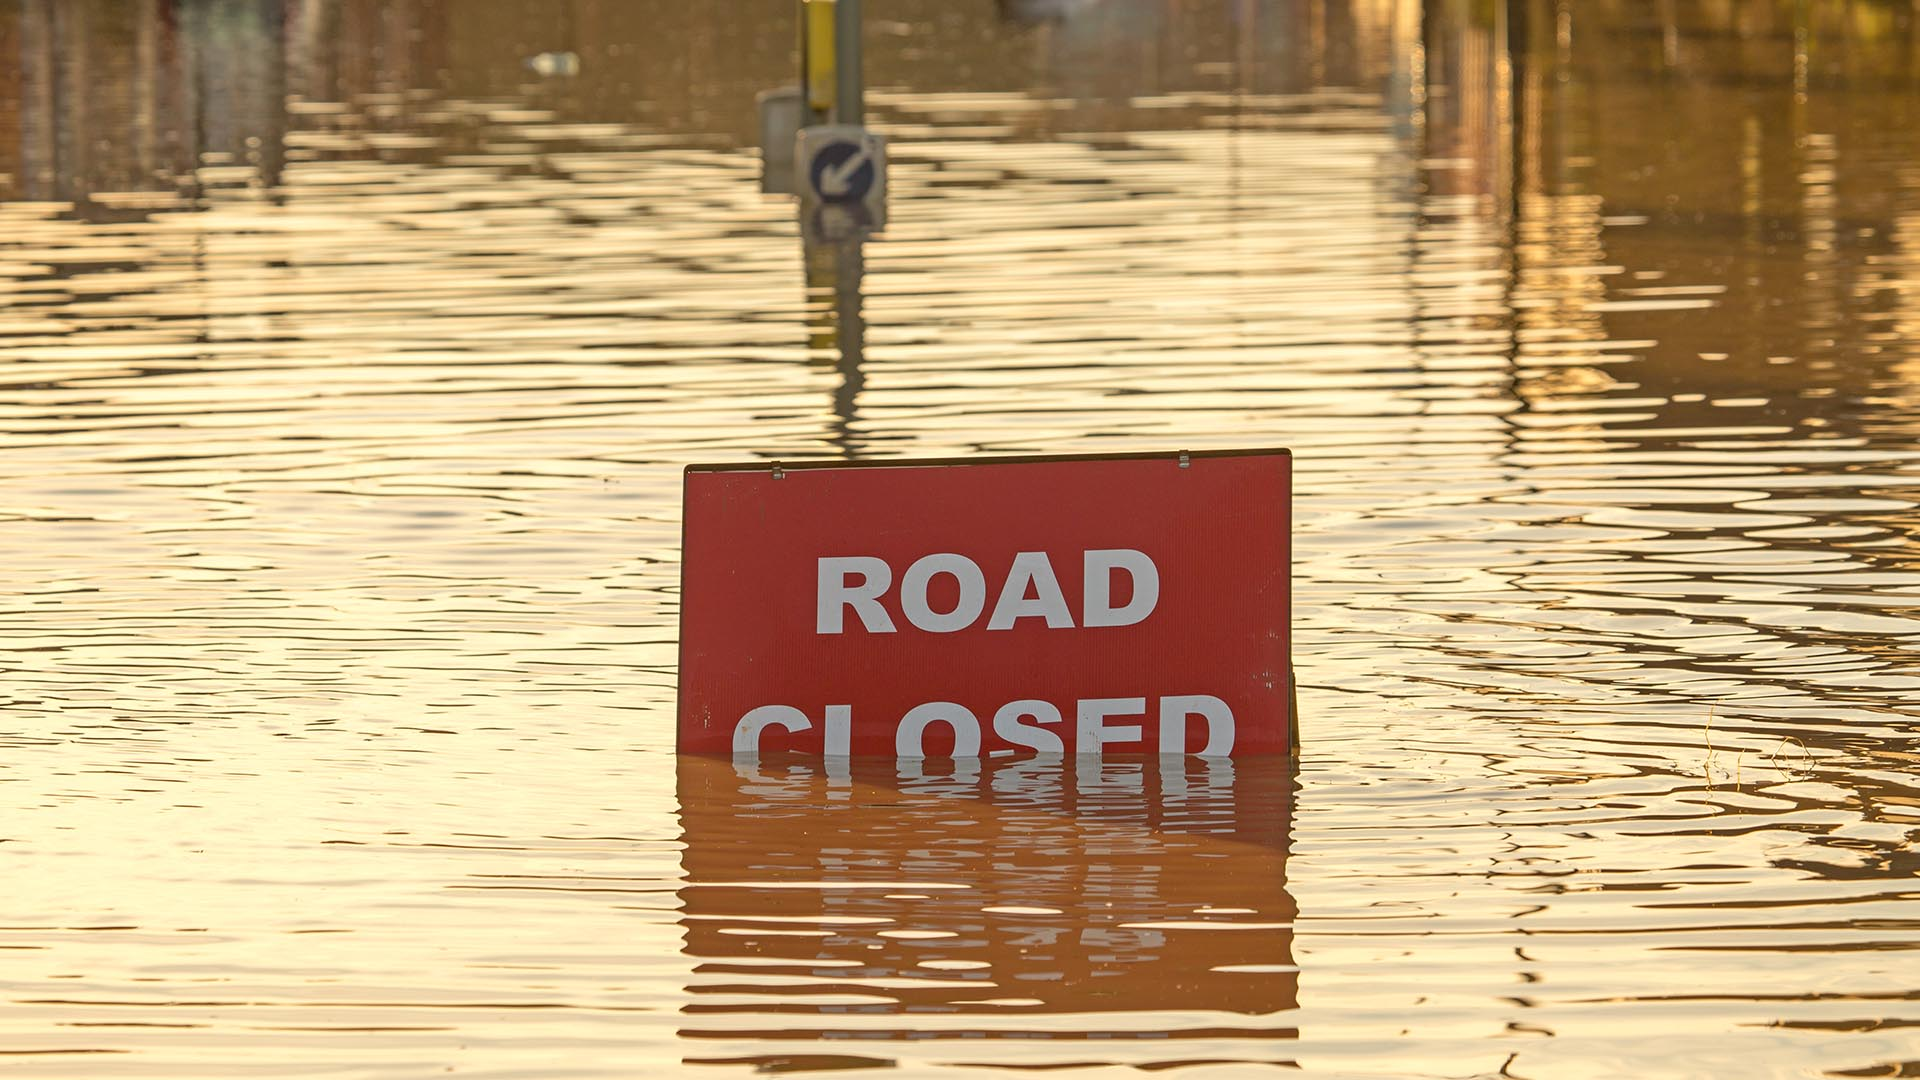 Road closed flooding